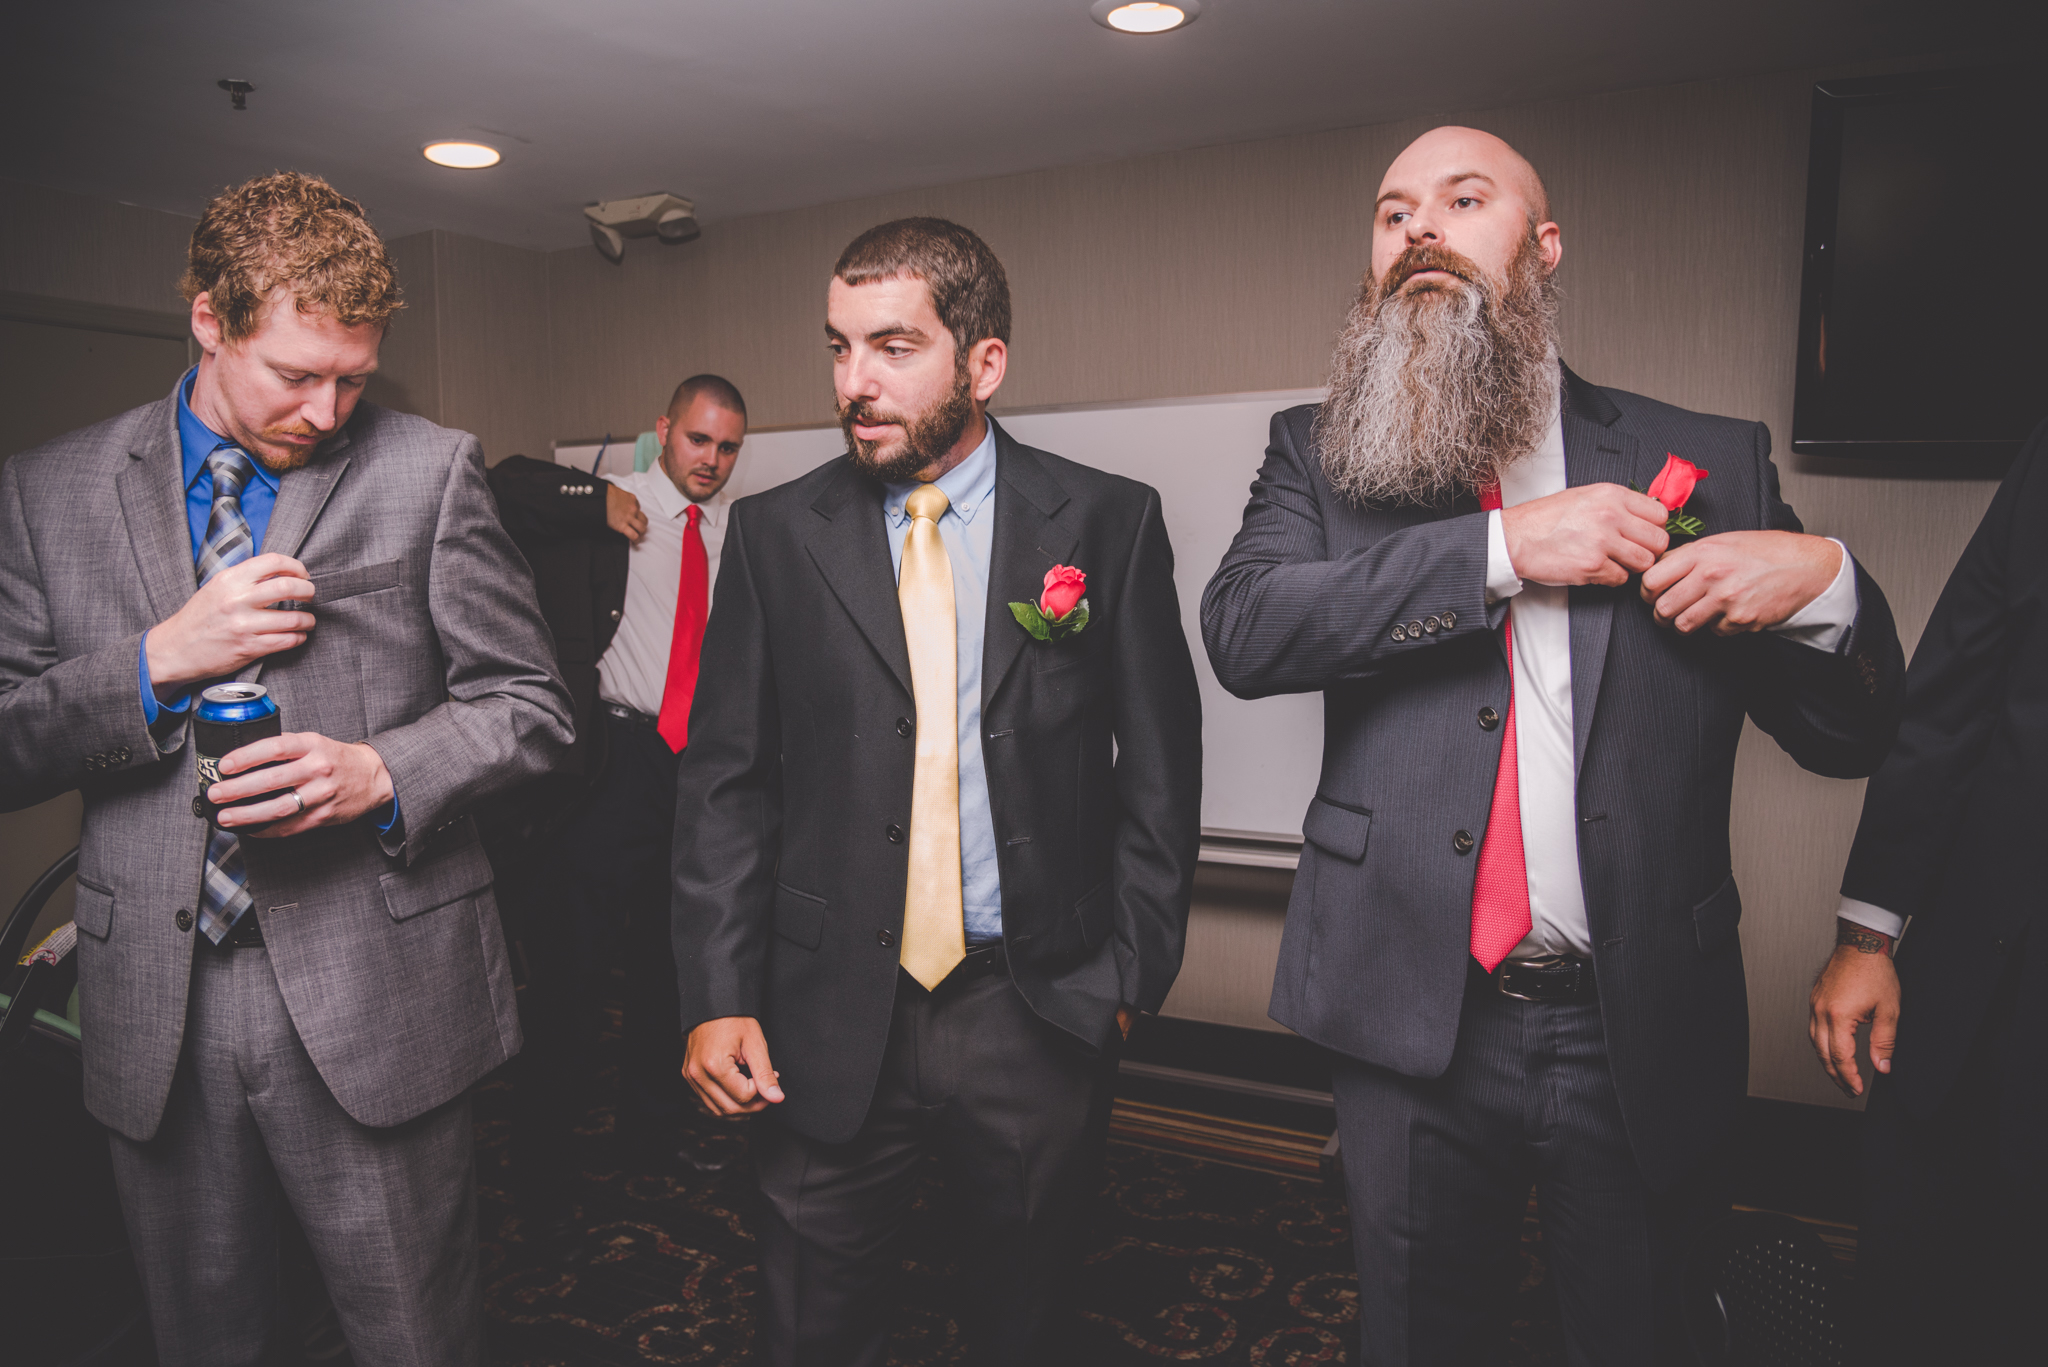 Raleigh Wedding, DoubleTree Hotel, Megan and Adam, groomsmen